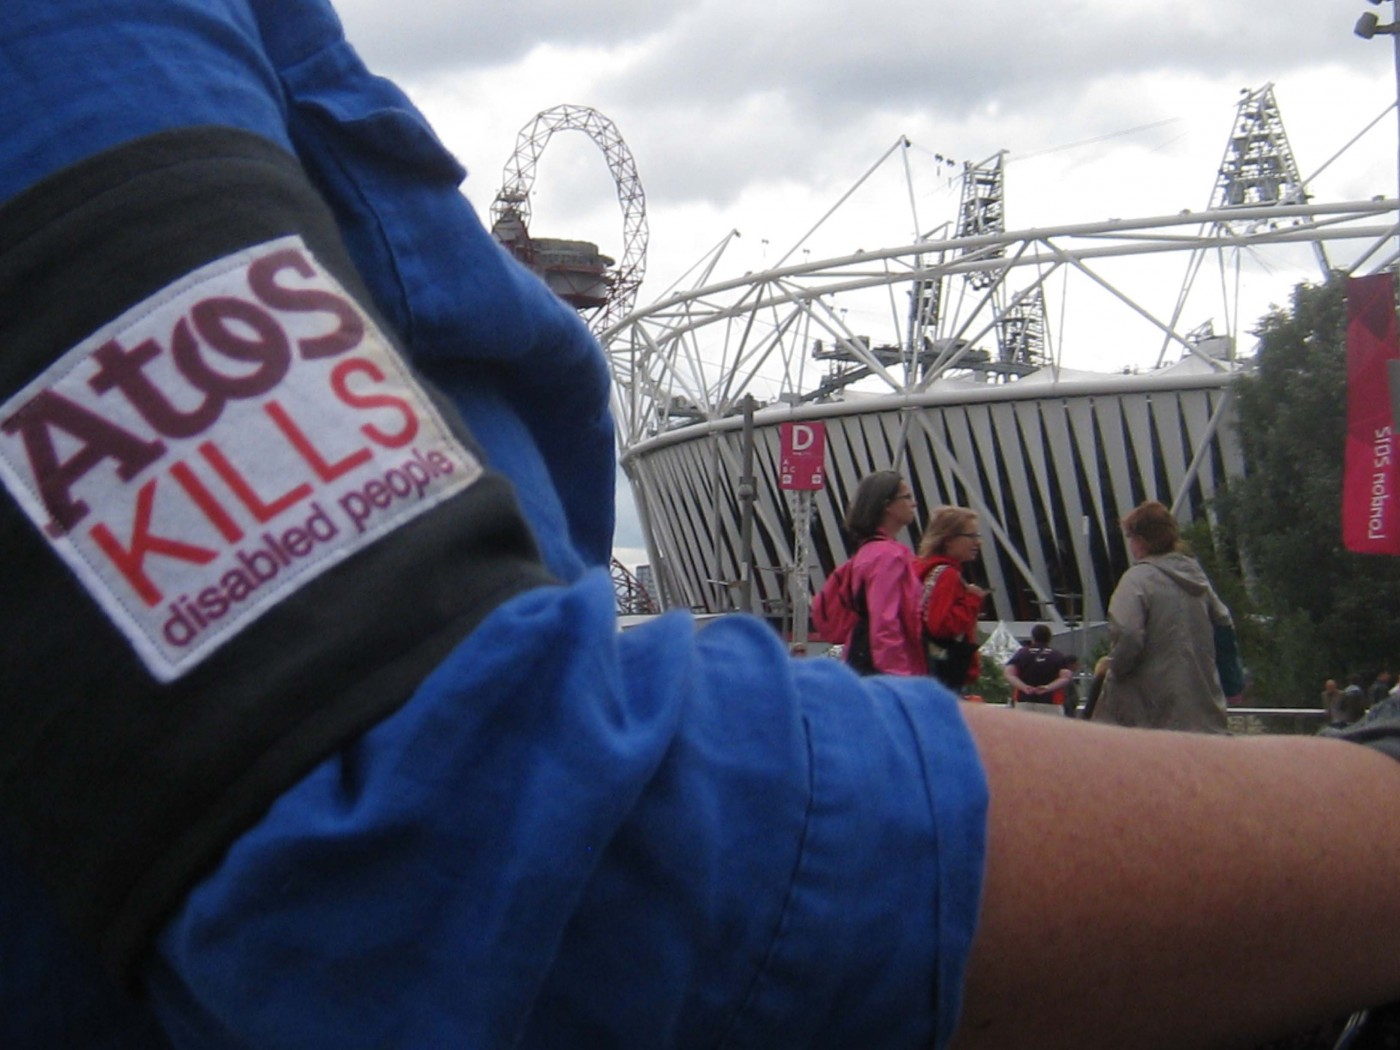 Worn over Liz Crow's blue shirt is a close-up of the Atos protest armband, showing parts of the slogan 'Atos kills disabled people' in purple and red on white. In the background is the Olympic stadium and a banner saying 'London 2012'.